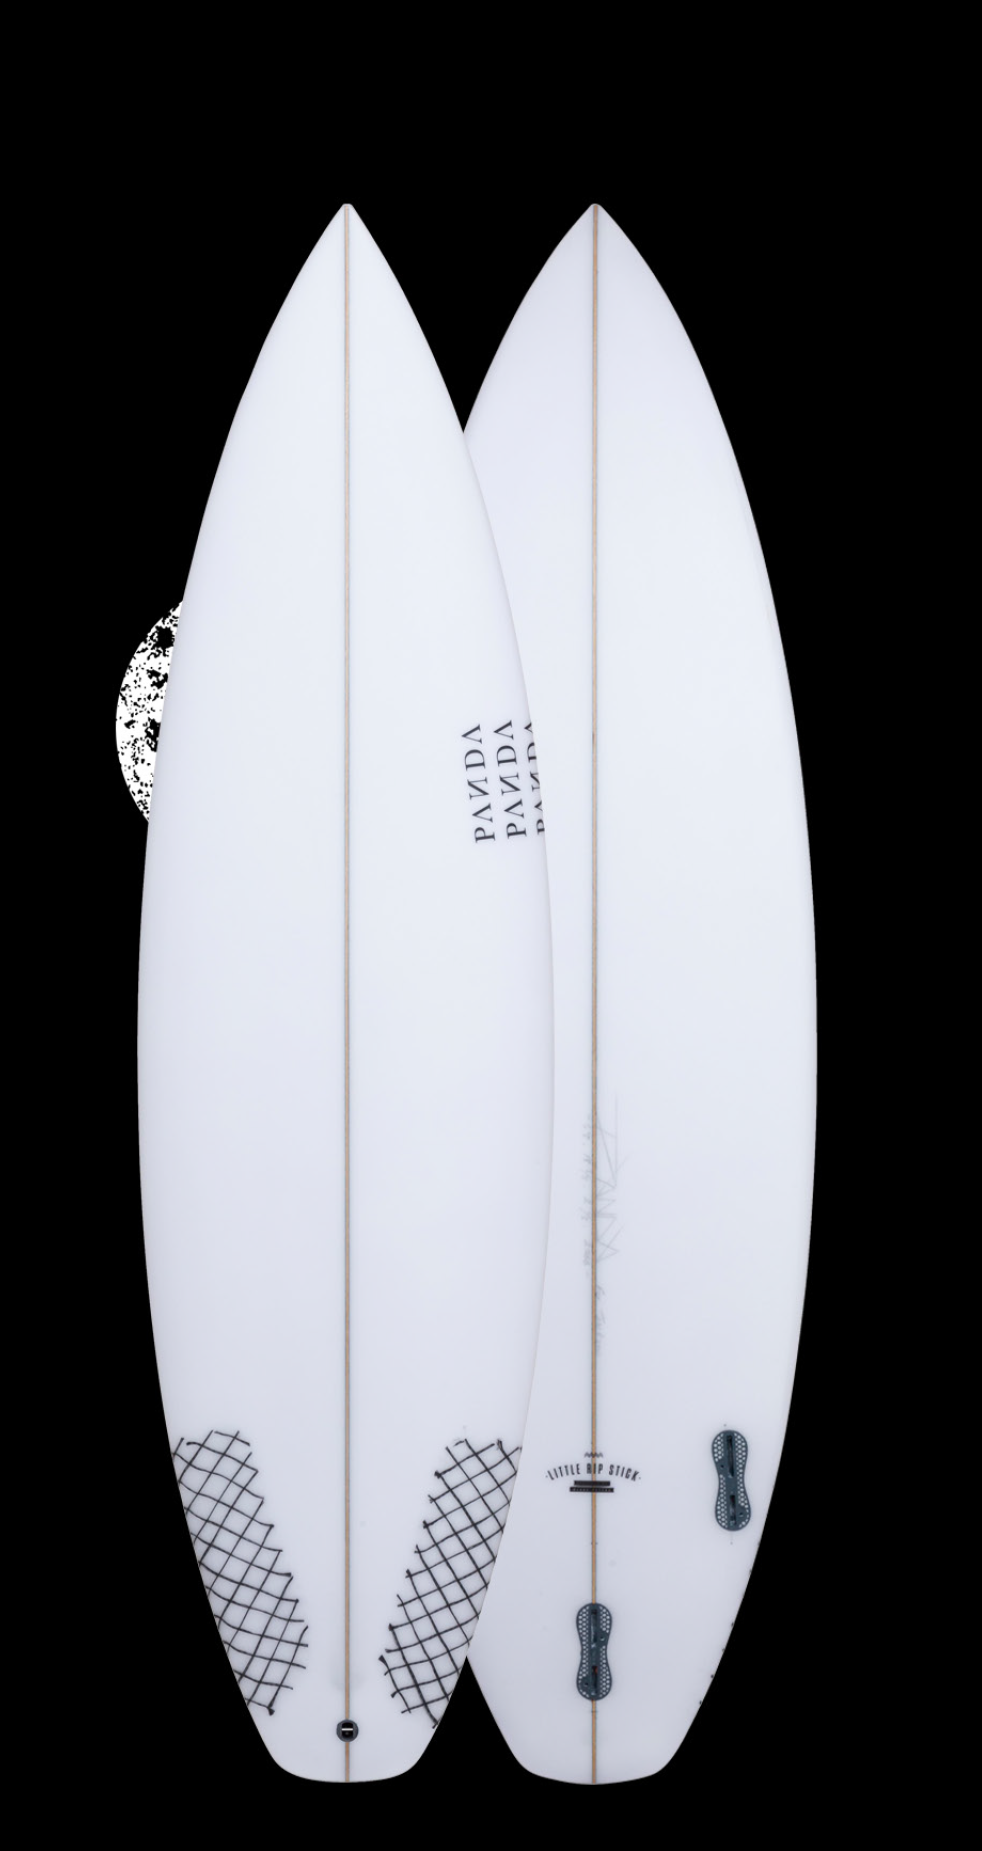 LITTLE RIP STICK   This is our best selling shortboard. For what was our step down shortboard a few years ago, this has now become our all rounder. Suited perfectly for beach breaks from 2-5ft, it is a perfect step down from the Pandamonium model, with a little added nose and tail width. Ride 1 inch shorter than you are tall, 1/4 wider and 1/16 thicker than your standard shortboard. If you enjoy this board, then also give The Norts model (for hollower waves) or the Pandamoni  -   um (for slightly bigger, punchier waves) a whirl.